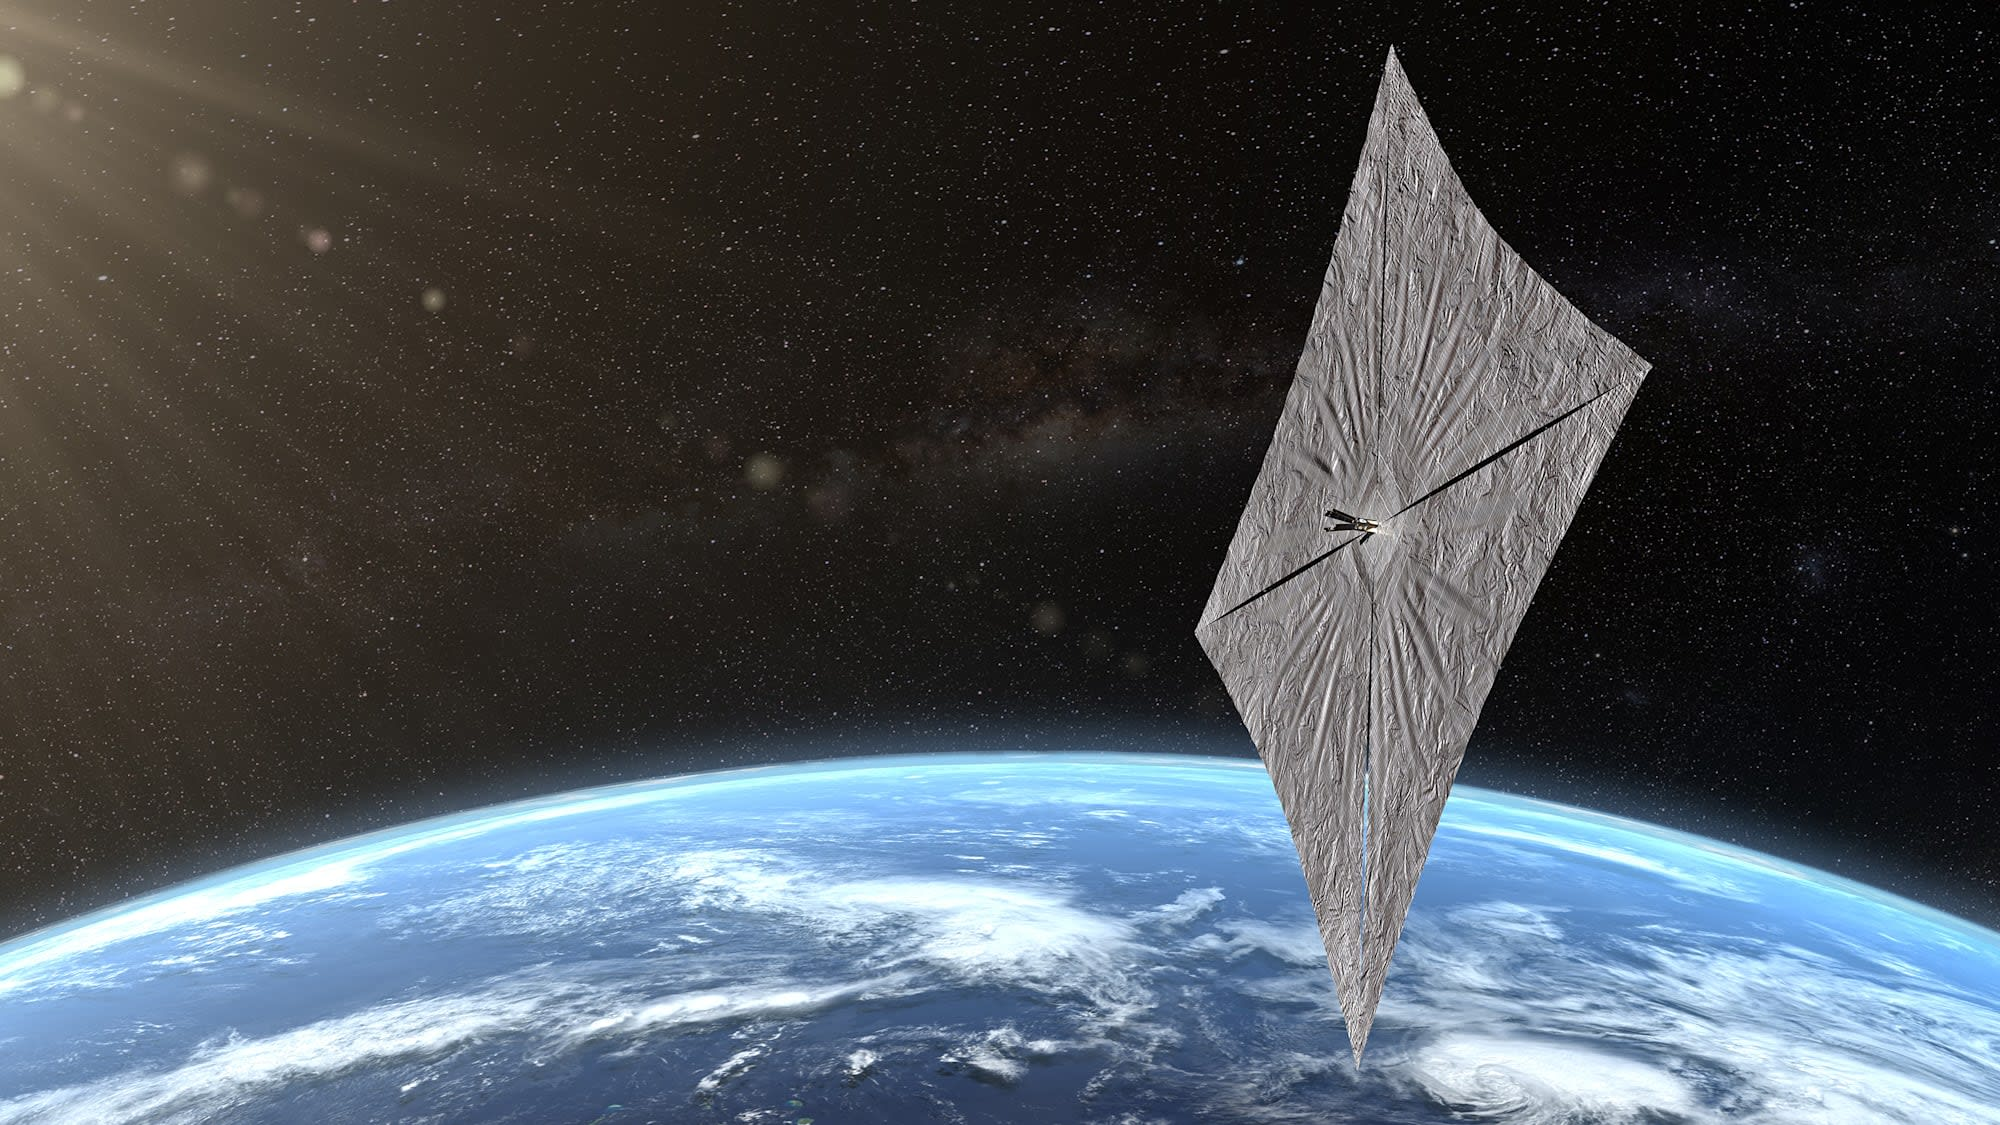 LightSail 2 sends its first signals back to Earth